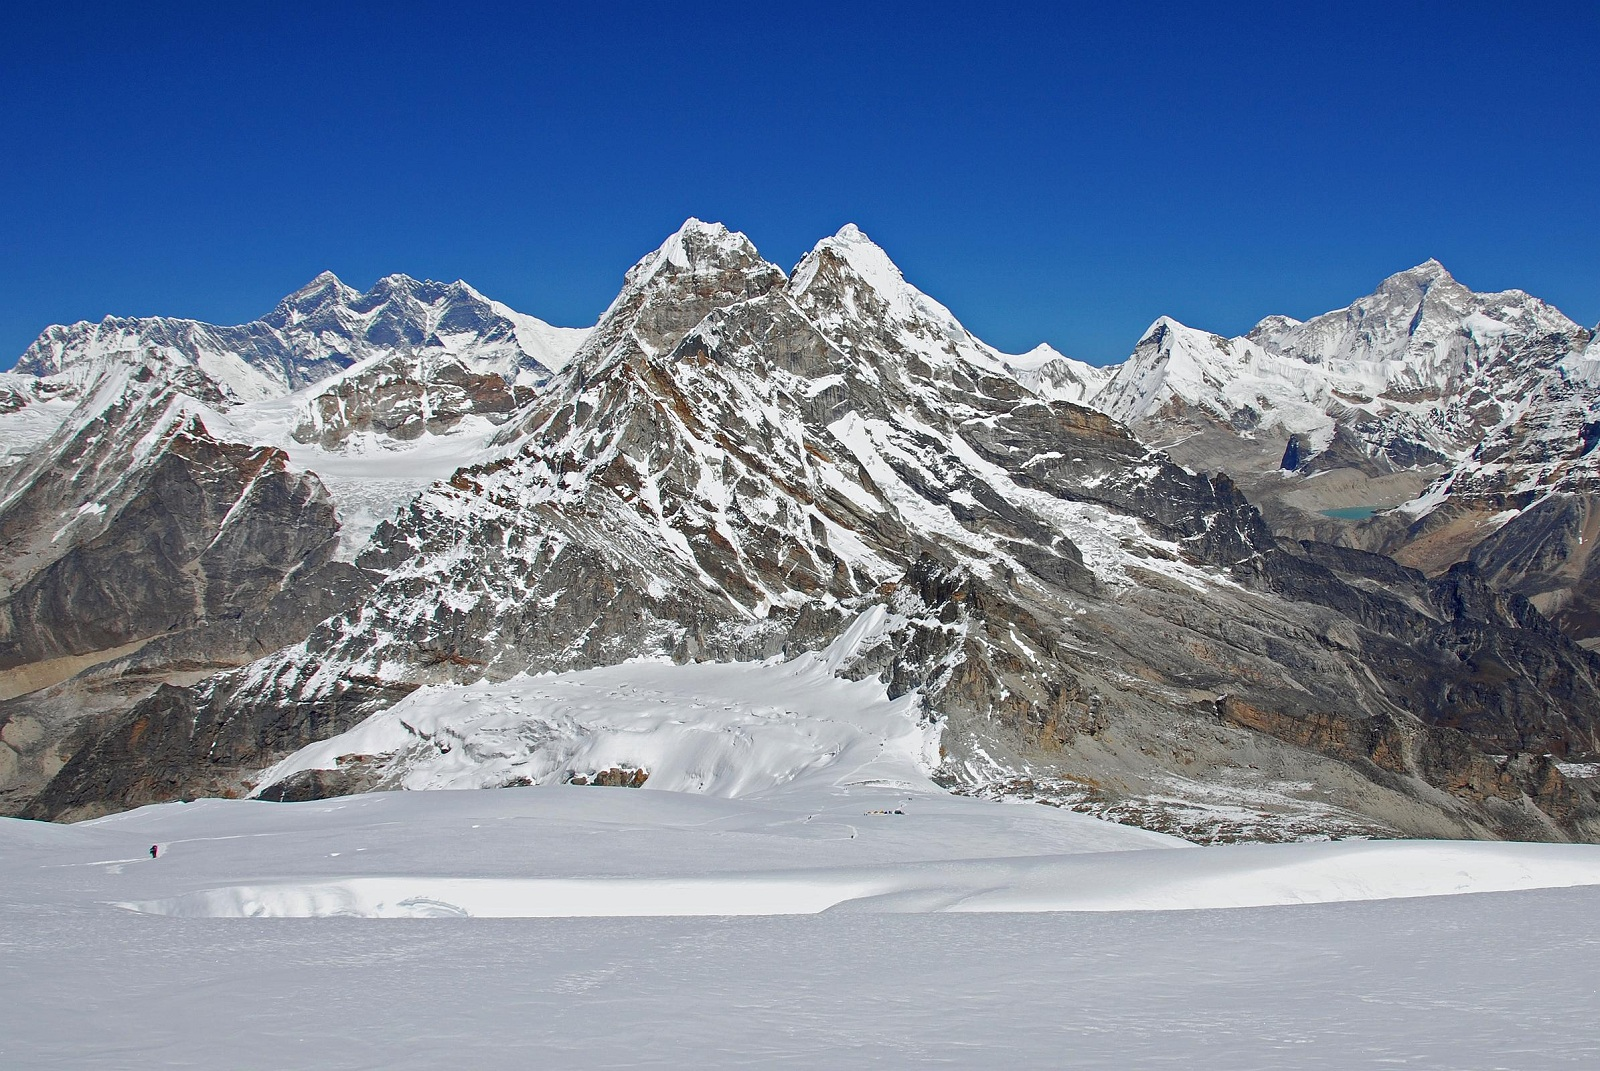 Tallest Mountains, Makalu West Face, Everest, View from Mera High Camp